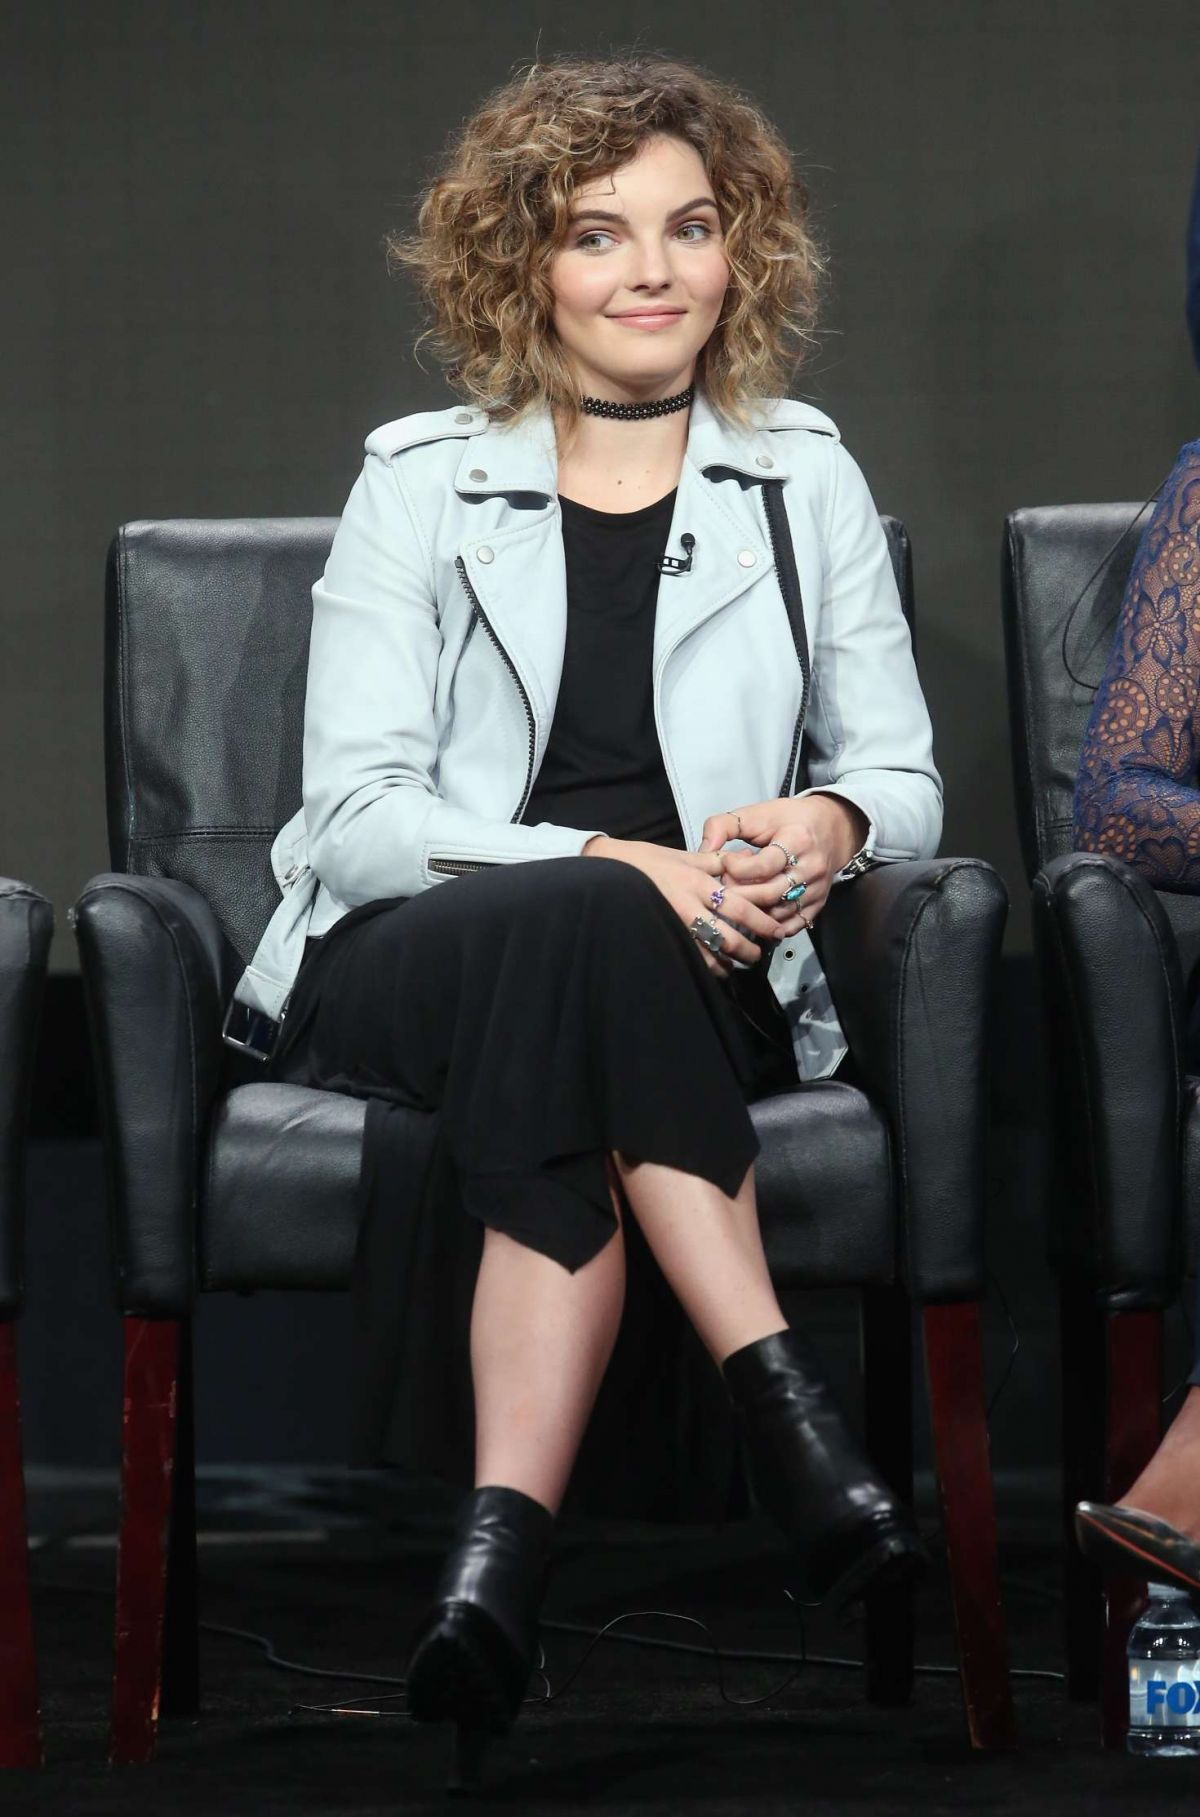 CAMREN BICONDOVA at Fox Panel at Summer TCA Press Tour in Los Angeles 08/08/2016